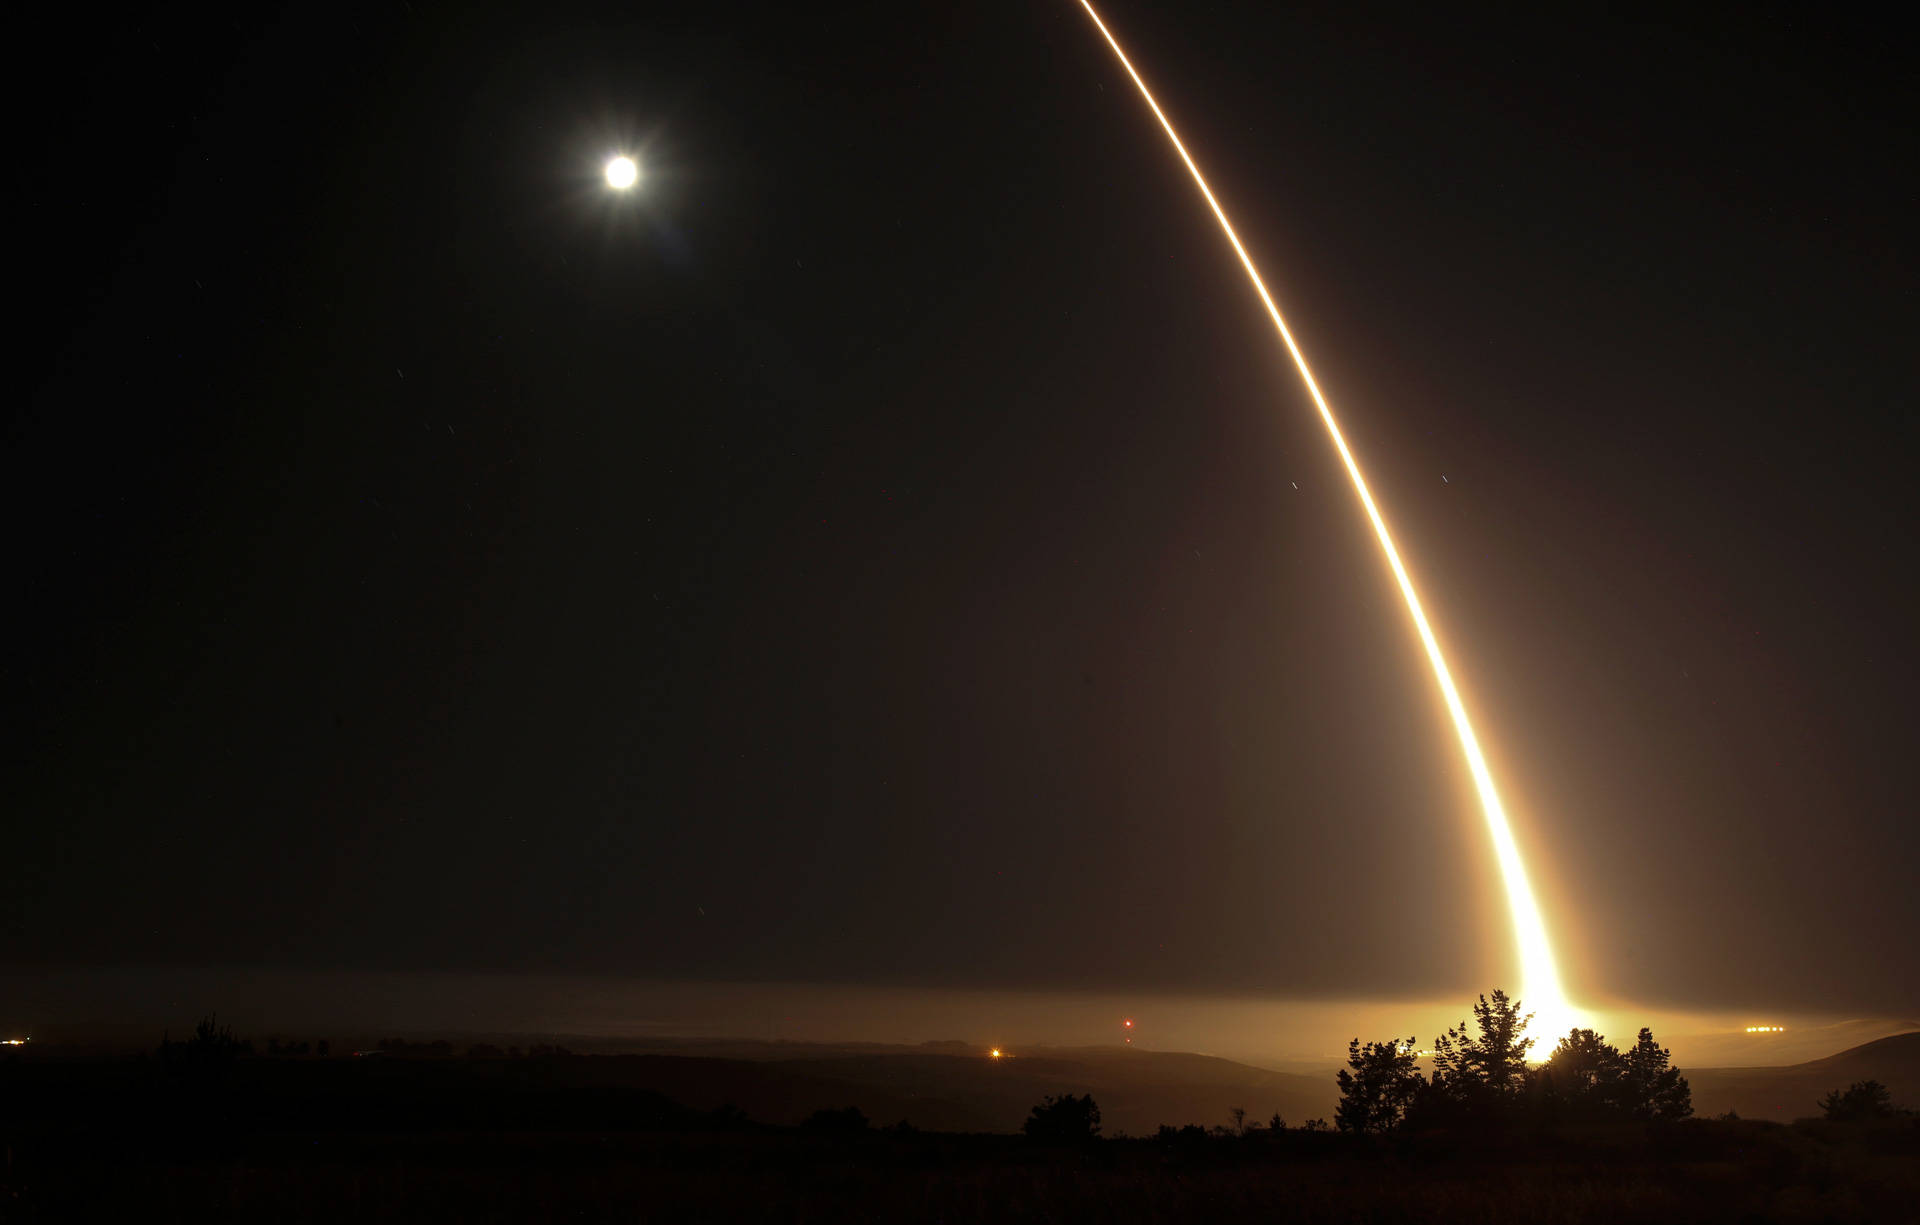 A streak of light trails off into the night sky during a test firing of an unarmed ICBM at Vandenberg Air Force Base early on May 3, 2017. The upcoming test will be the fourth such test this year. RINGO CHIU/AFP/Getty Images